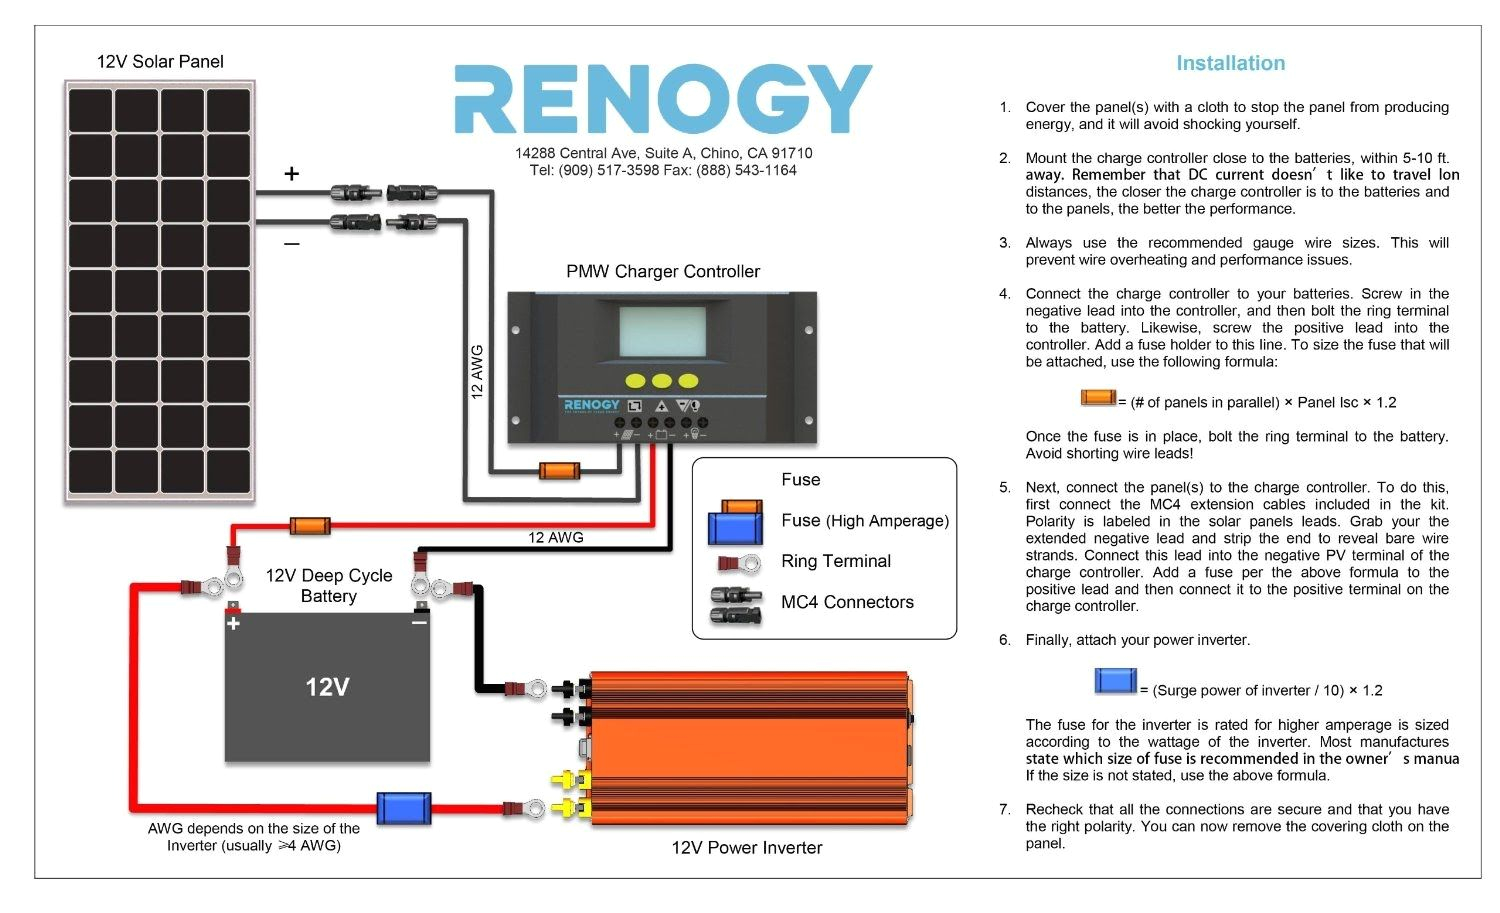 diy solar panel system wiring diagram volovets info